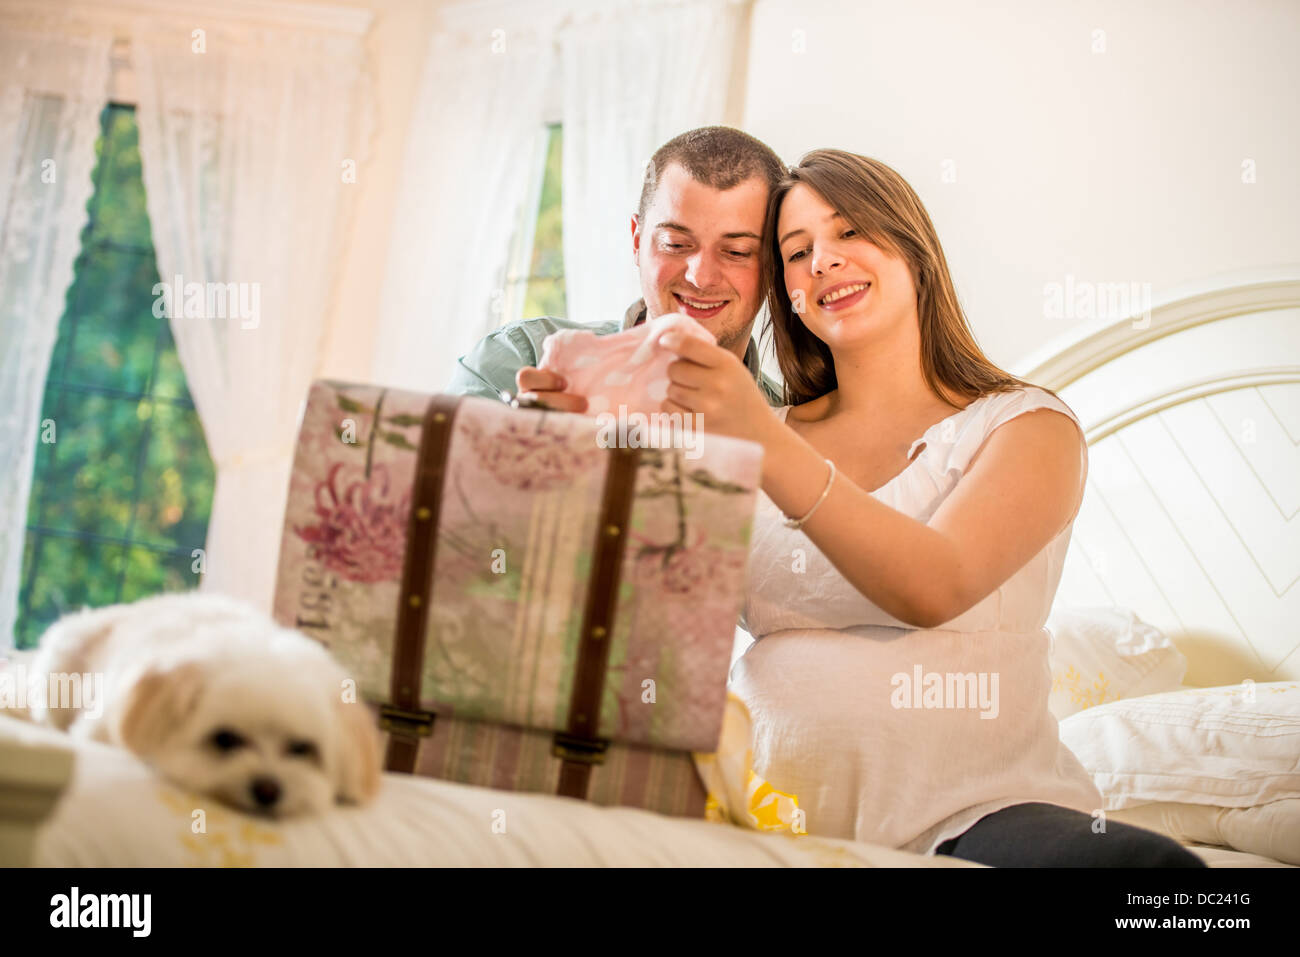 Couple looking through case of baby clothes - Stock Image